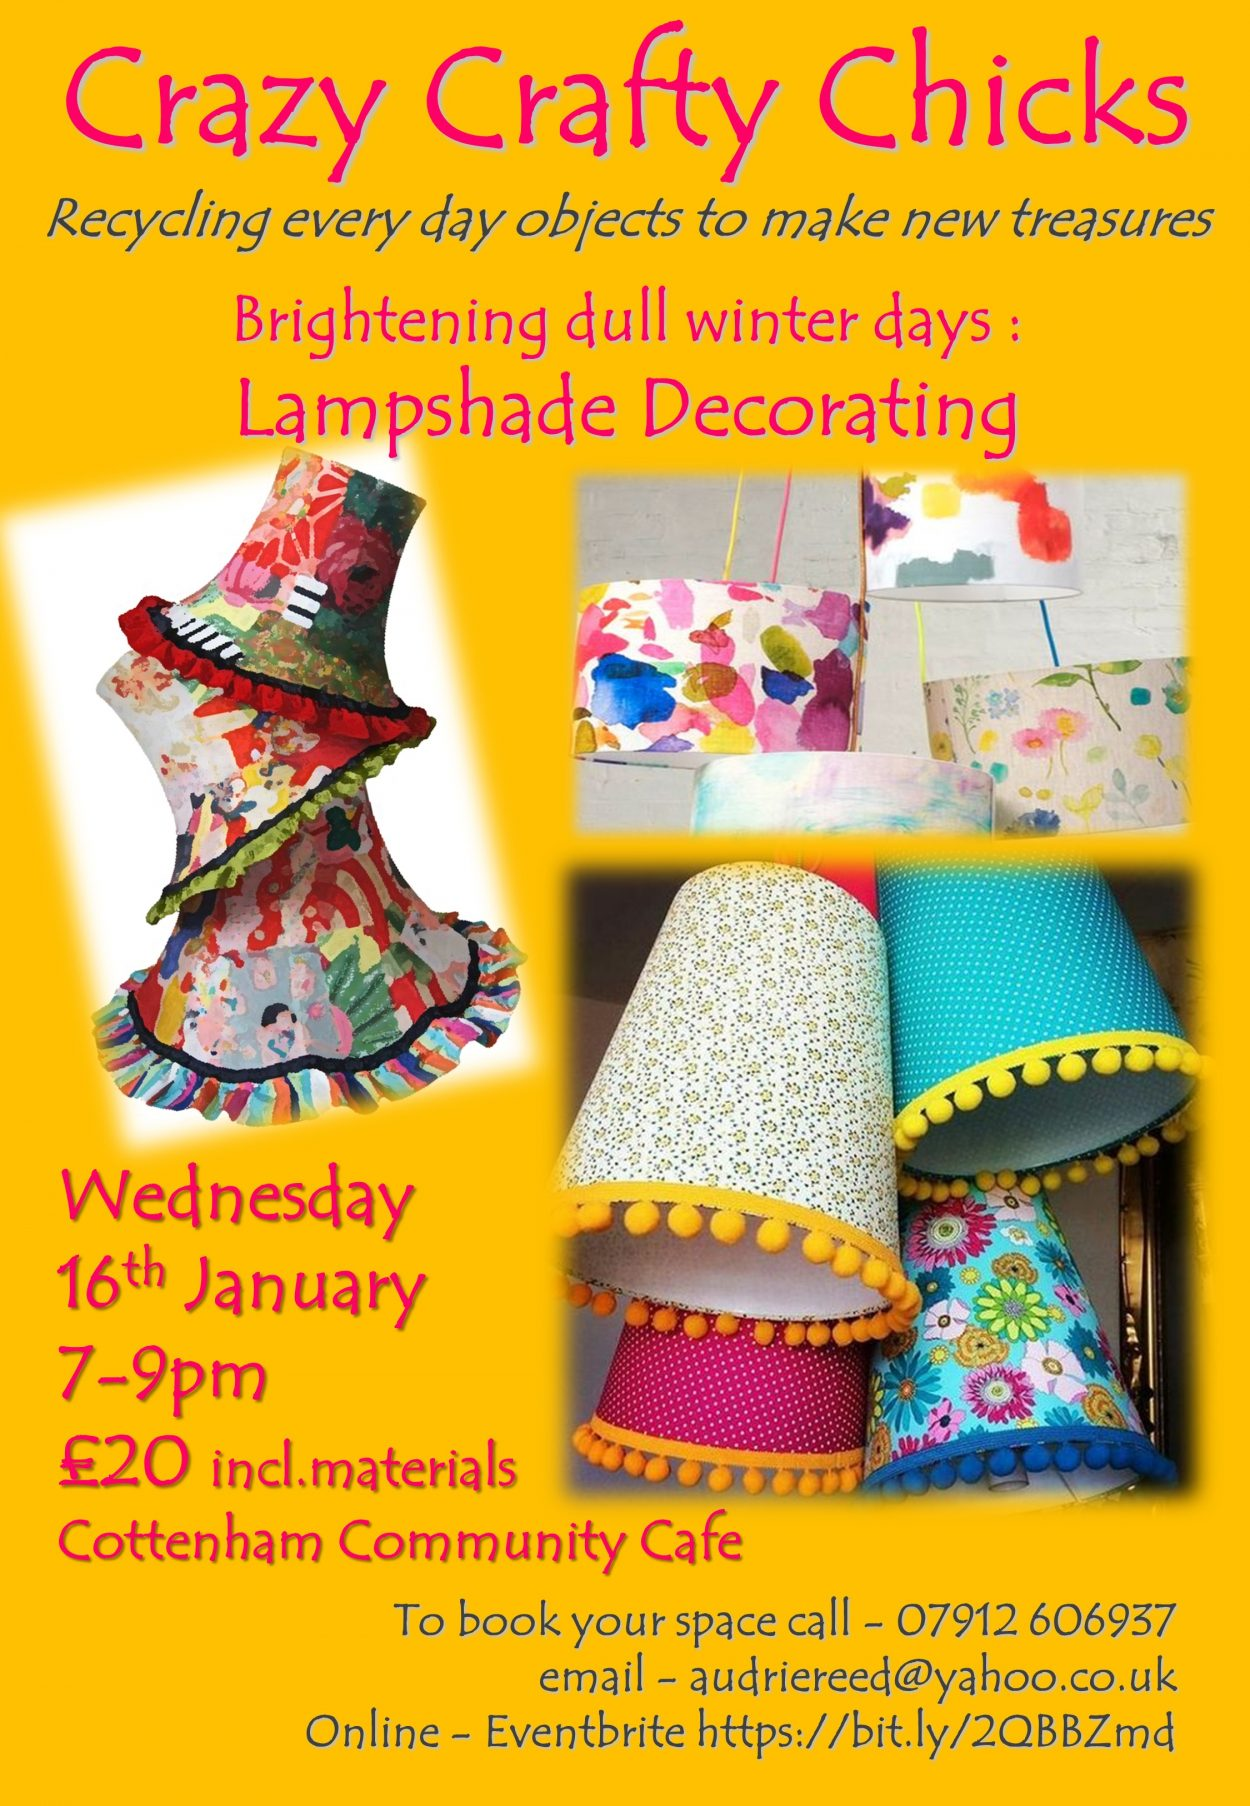 Crazy Crafty Chicks Decorating Lampshades